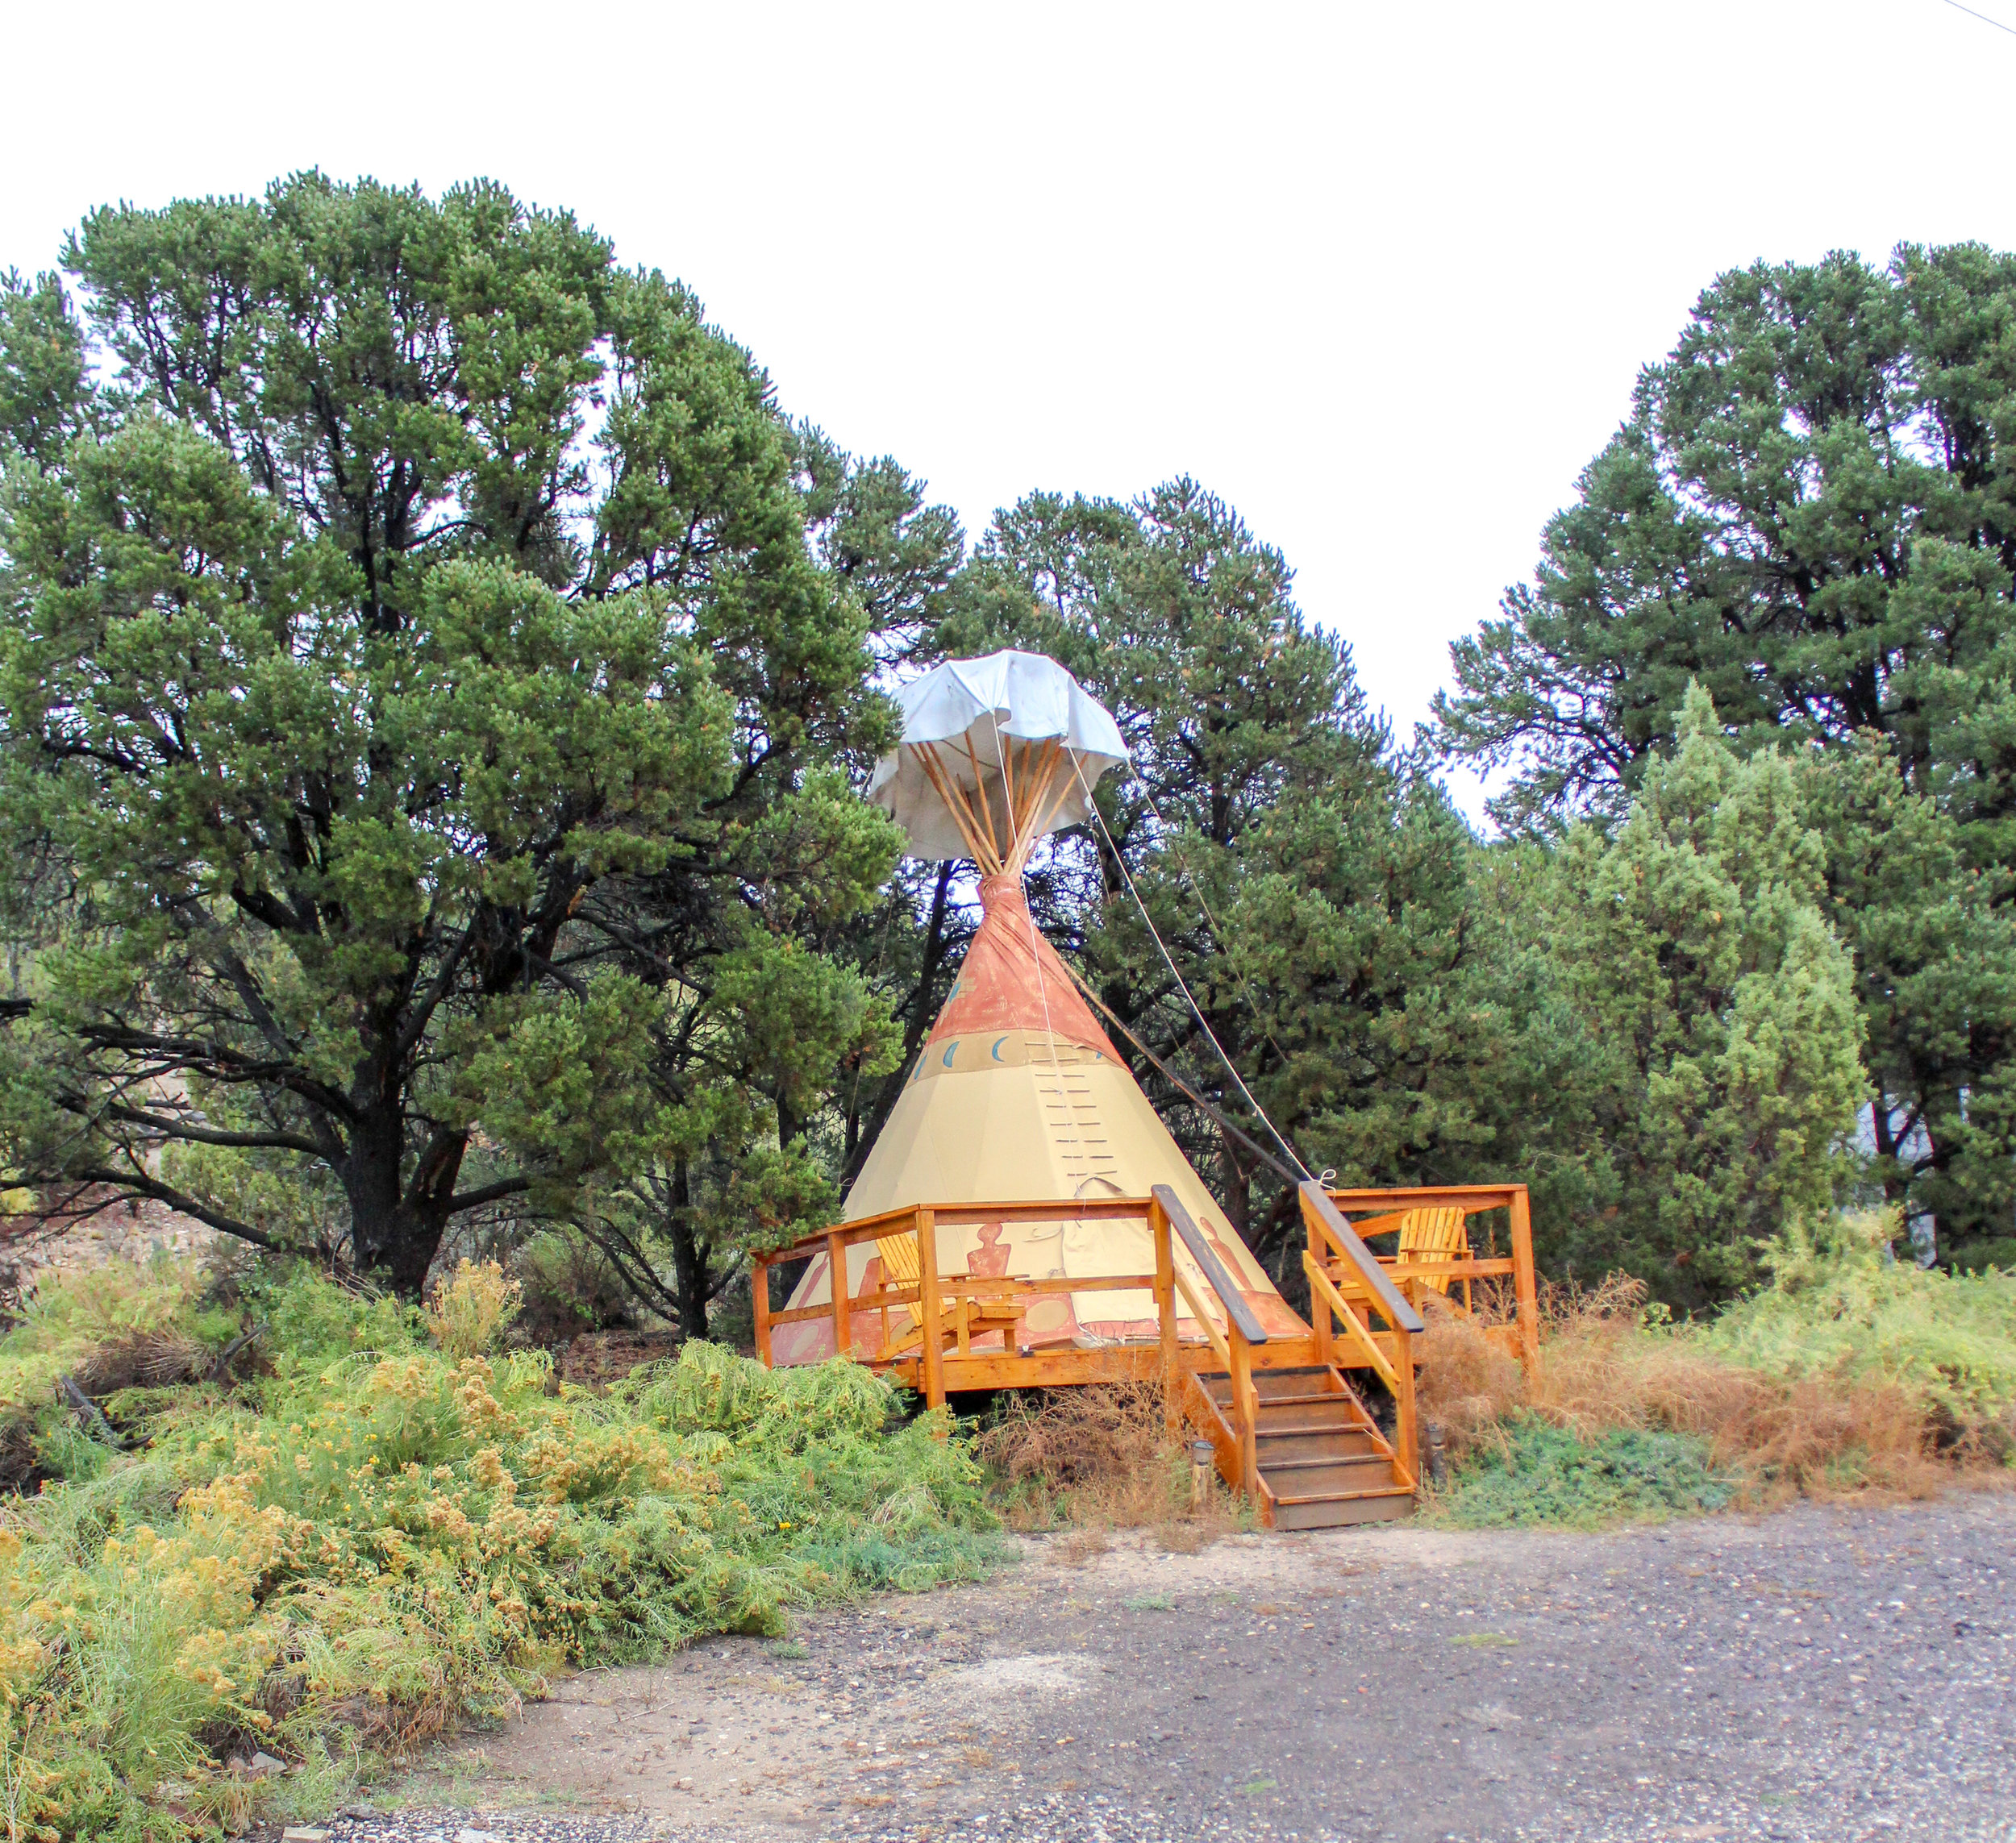 This Tipi was located next door to our cabin. You have the option to stay inside a Tipi or Cabin.